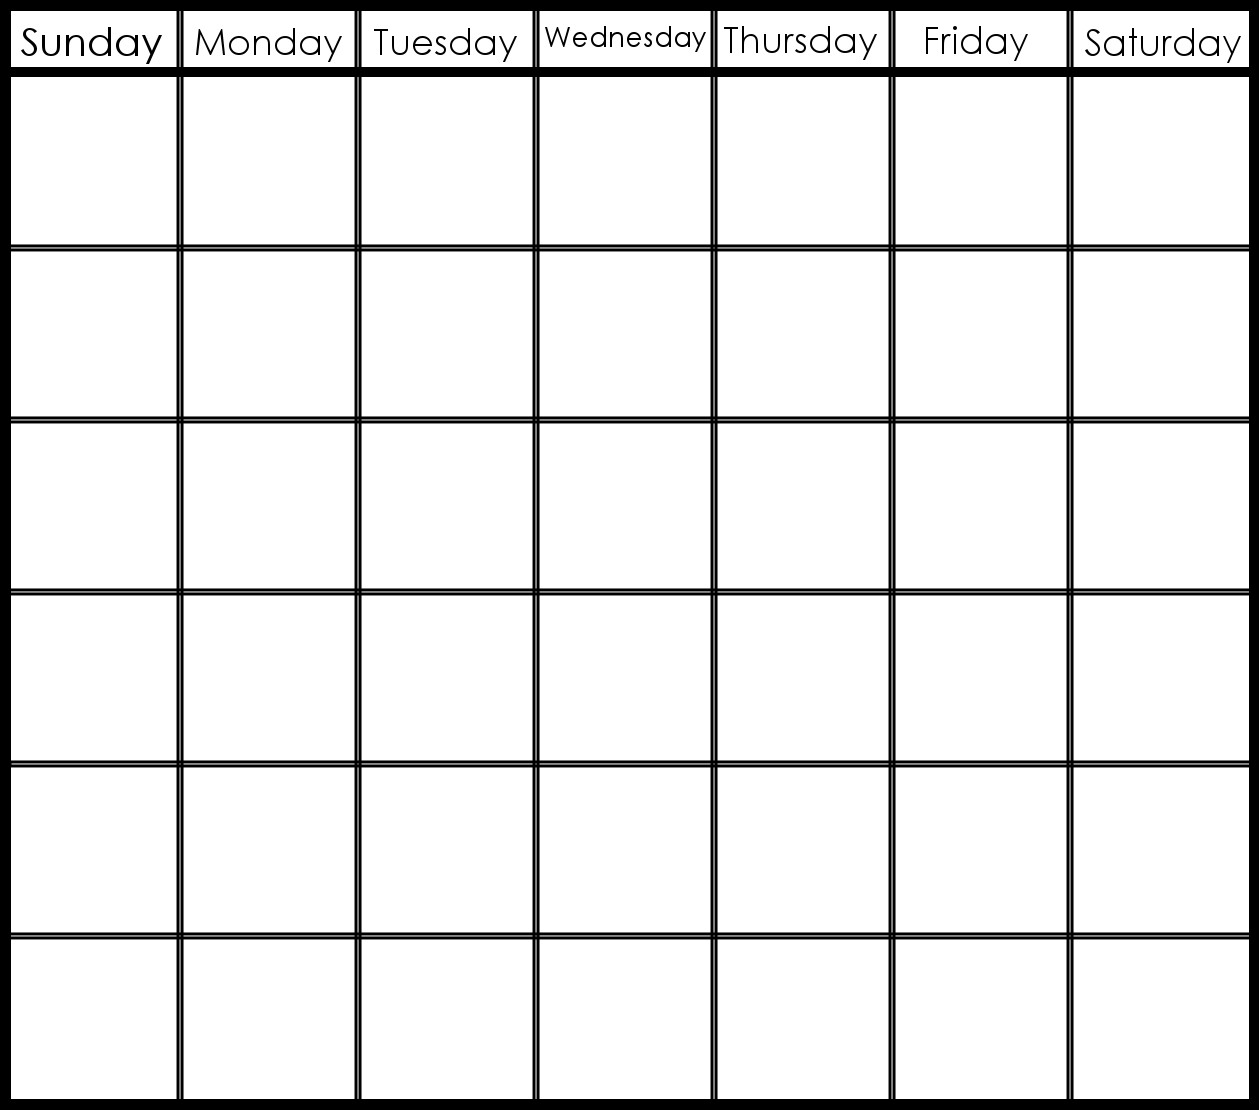 6 Week Printable Calendar | Printable Calendar Templates 2019 with 6 Week Printable Blank Calendar